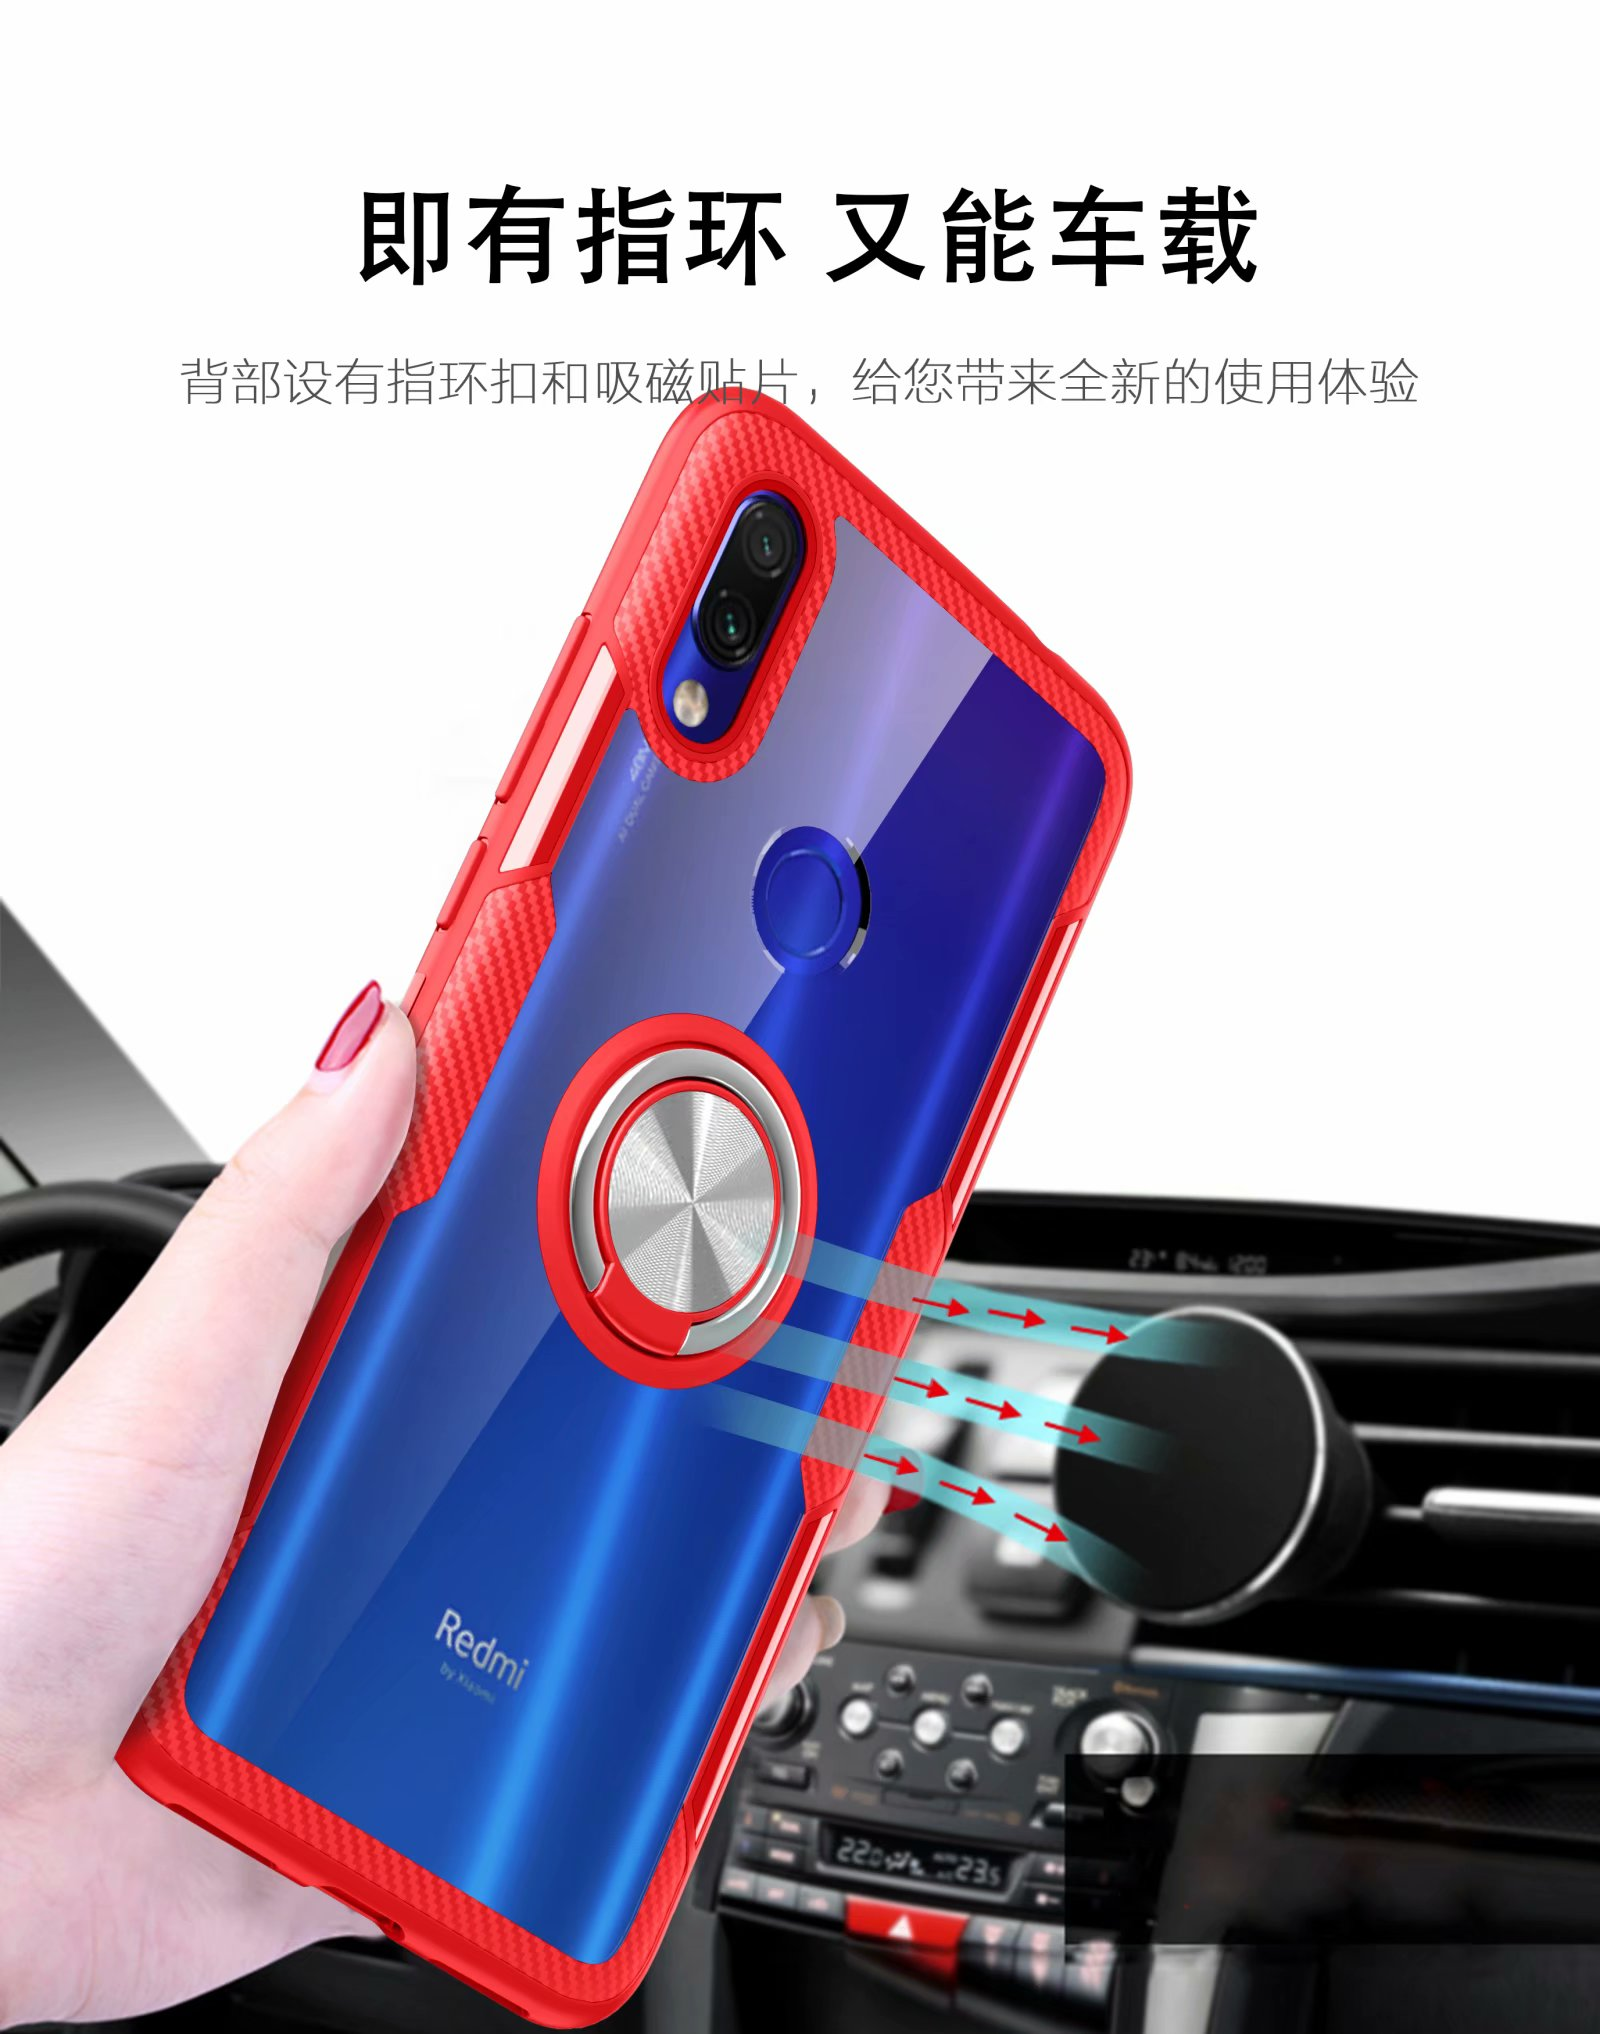 For Xiaomi Redmi Note 7 Pro Case With Ring Stand Magnet Transparent shockproof Protective Back Cover For Xiaomi Redmi Note 7 Pro Case With Ring Stand Magnet Transparent shockproof Protective Back Cover case for xiaomi redmi 7